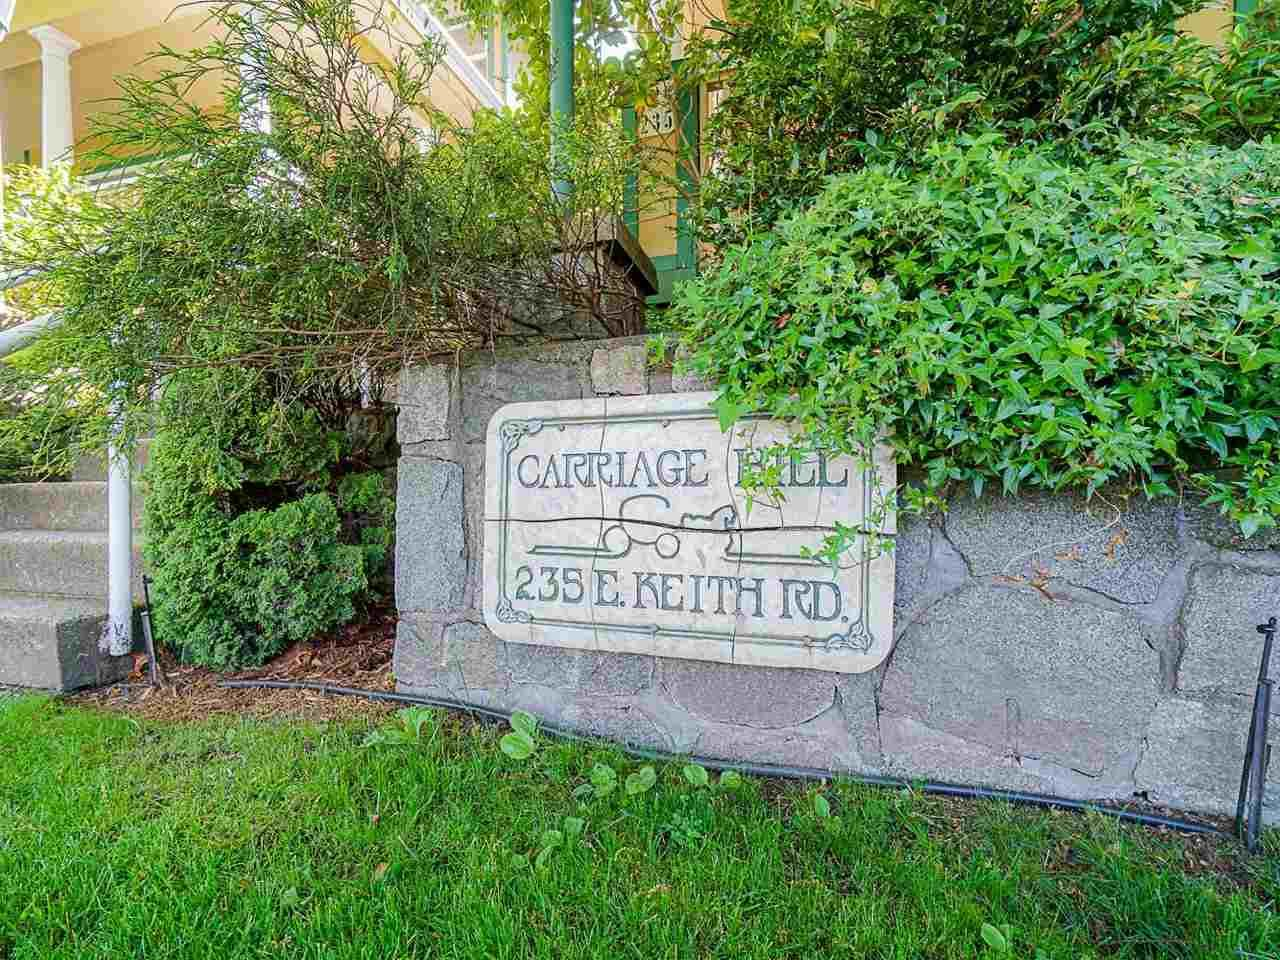 """Photo 4: Photos: 4 235 E KEITH Road in North Vancouver: Lower Lonsdale Townhouse for sale in """"Carriage Hill"""" : MLS®# R2471169"""